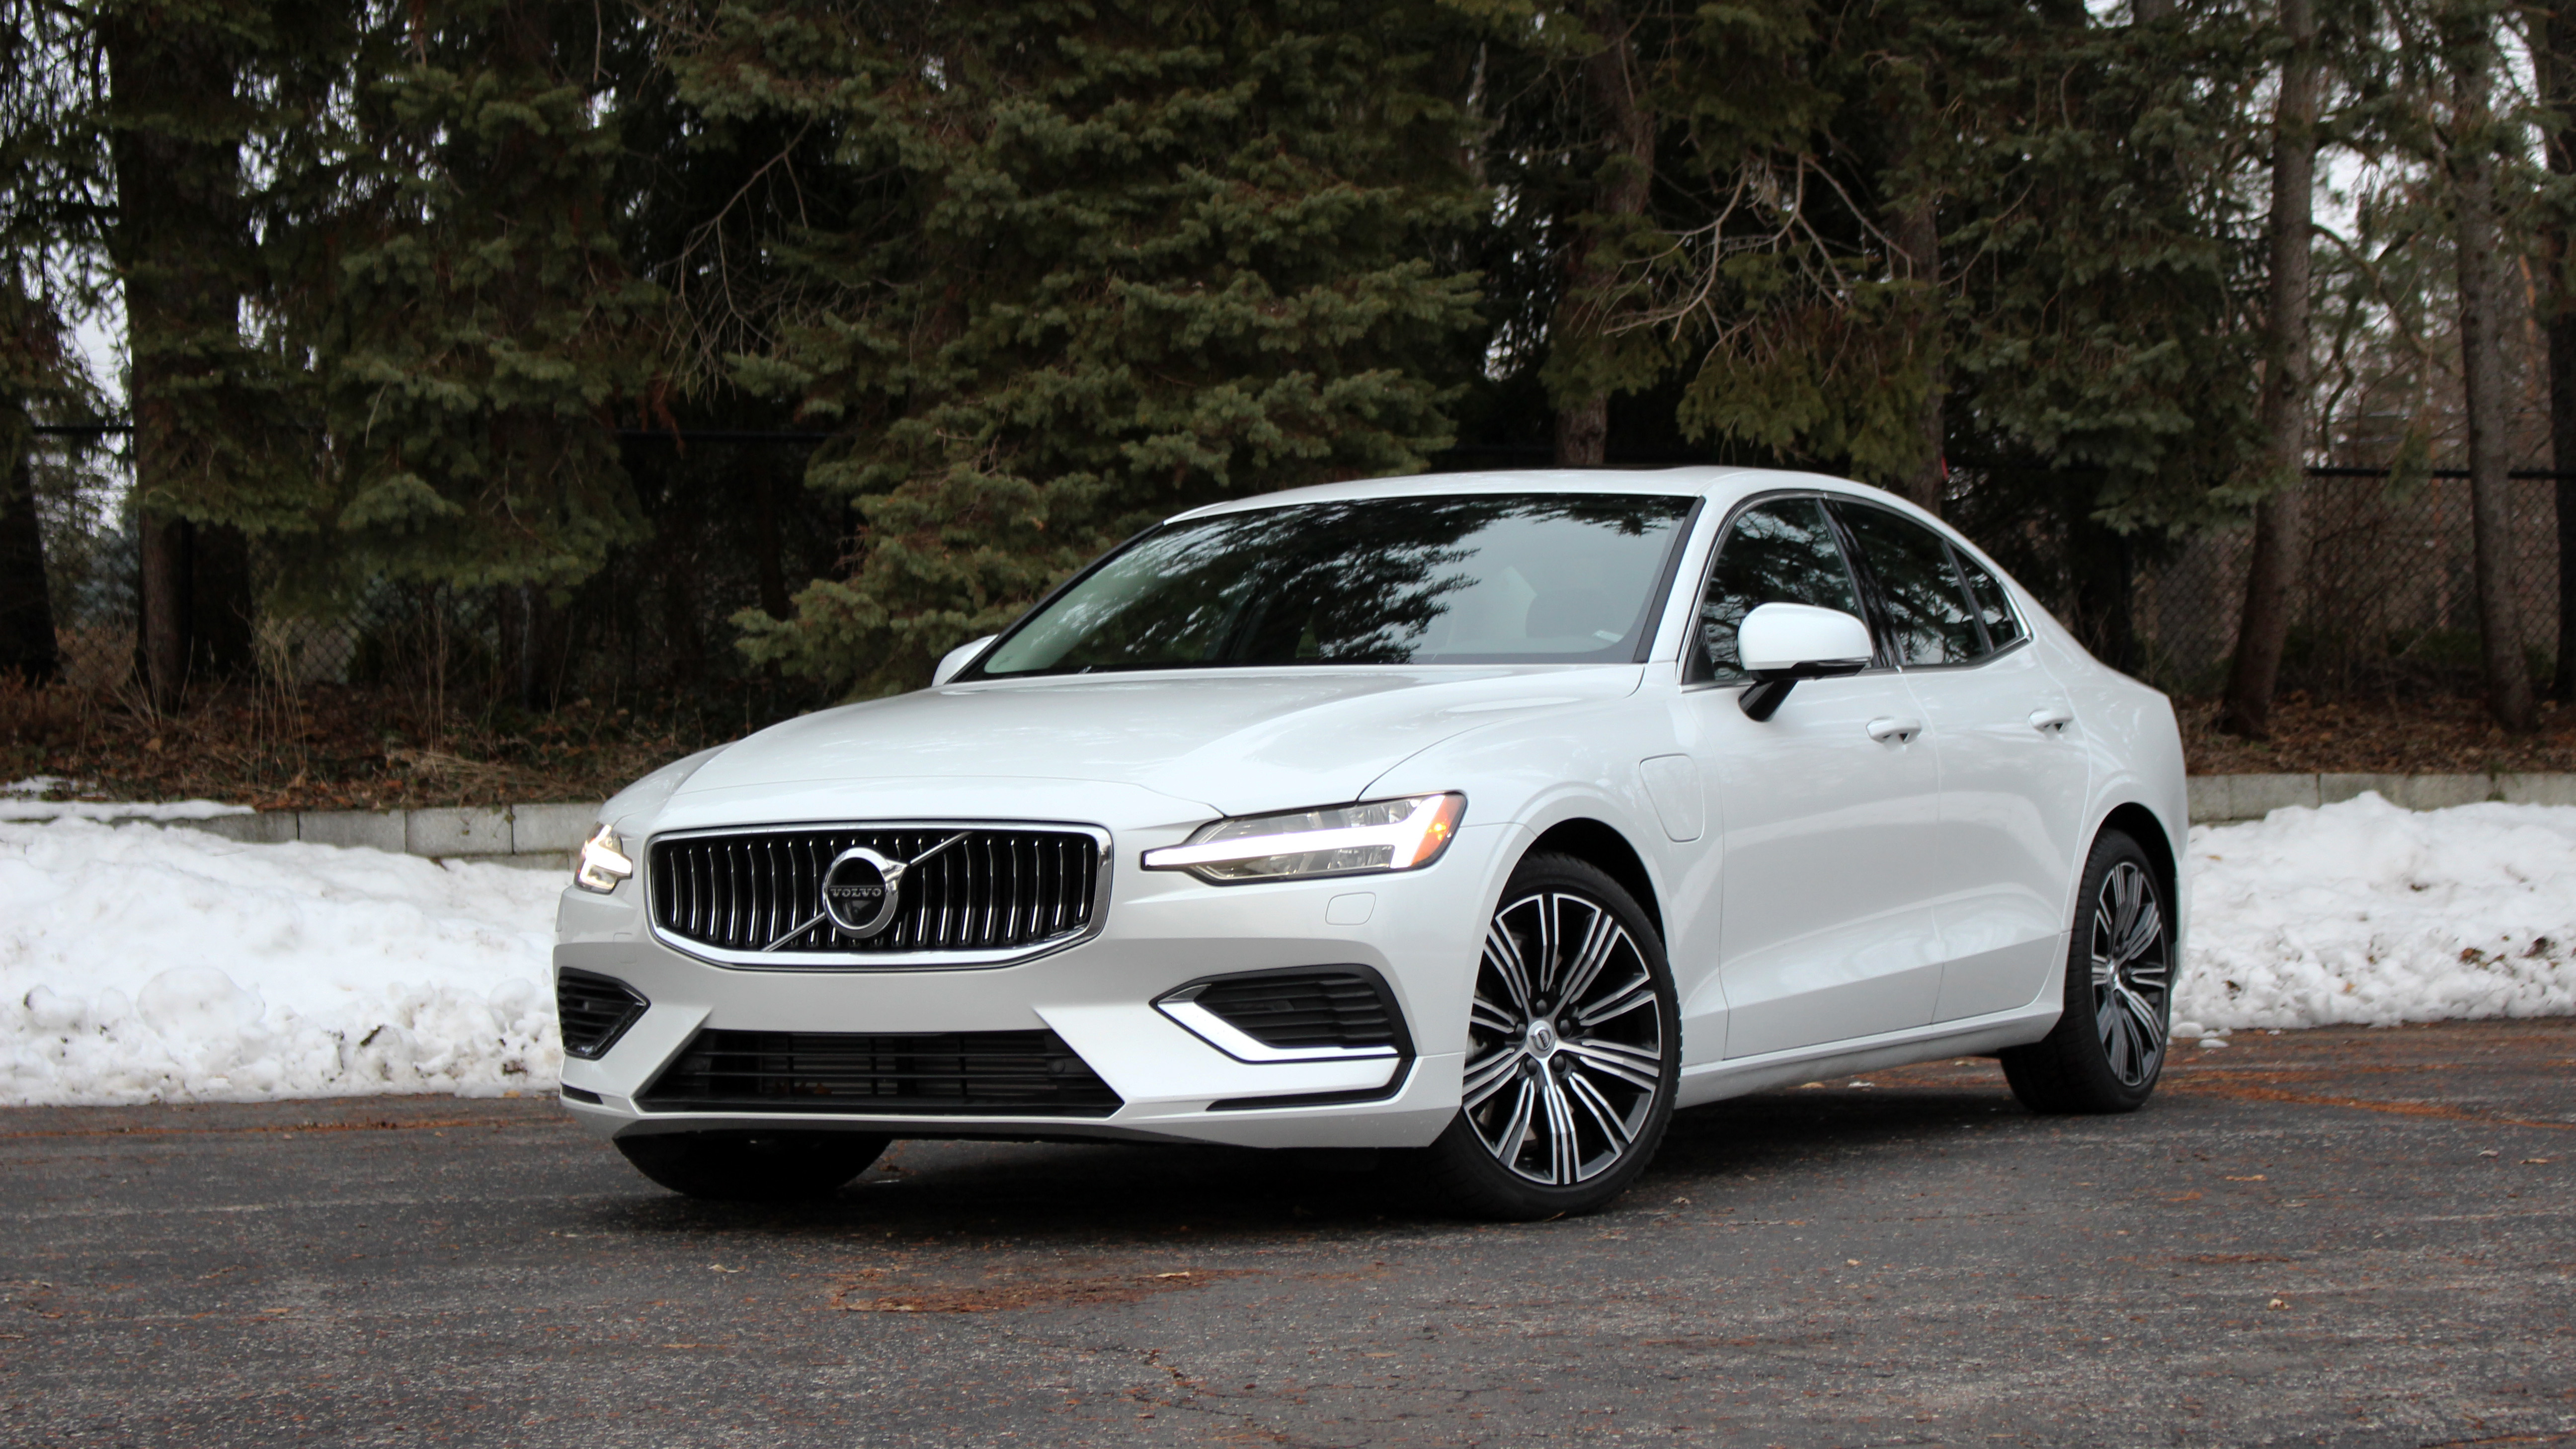 2020 Volvo S60 T8 Long Term Introduction Phev Specs Options Autoblog